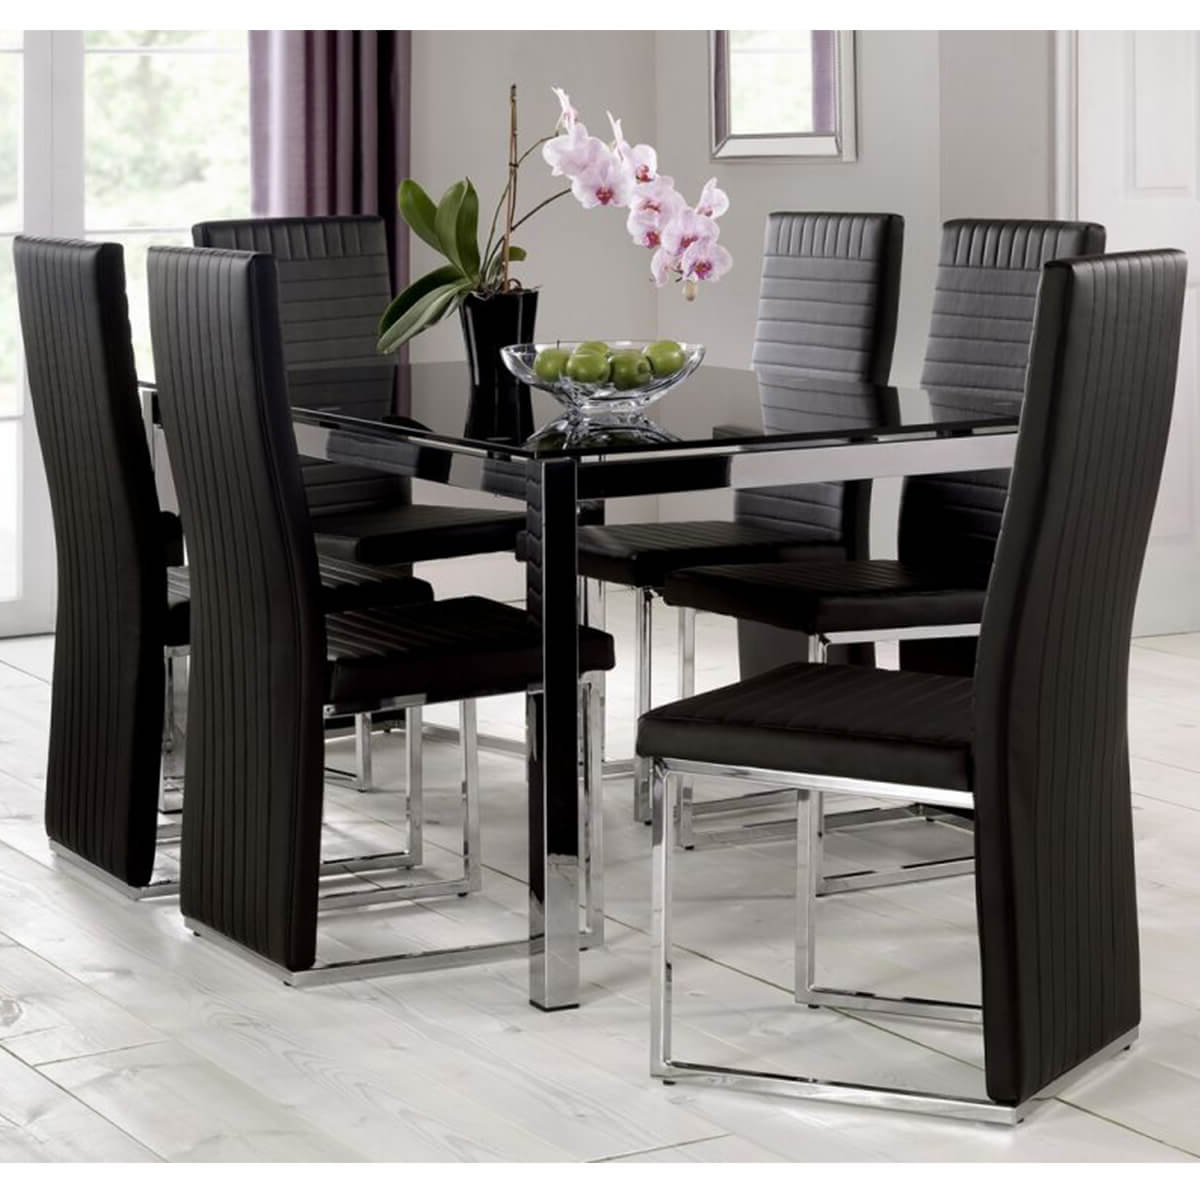 Latest Tempo Black Dining Table With Black Chairs Regarding Dining Tables With Black U Legs (View 20 of 30)